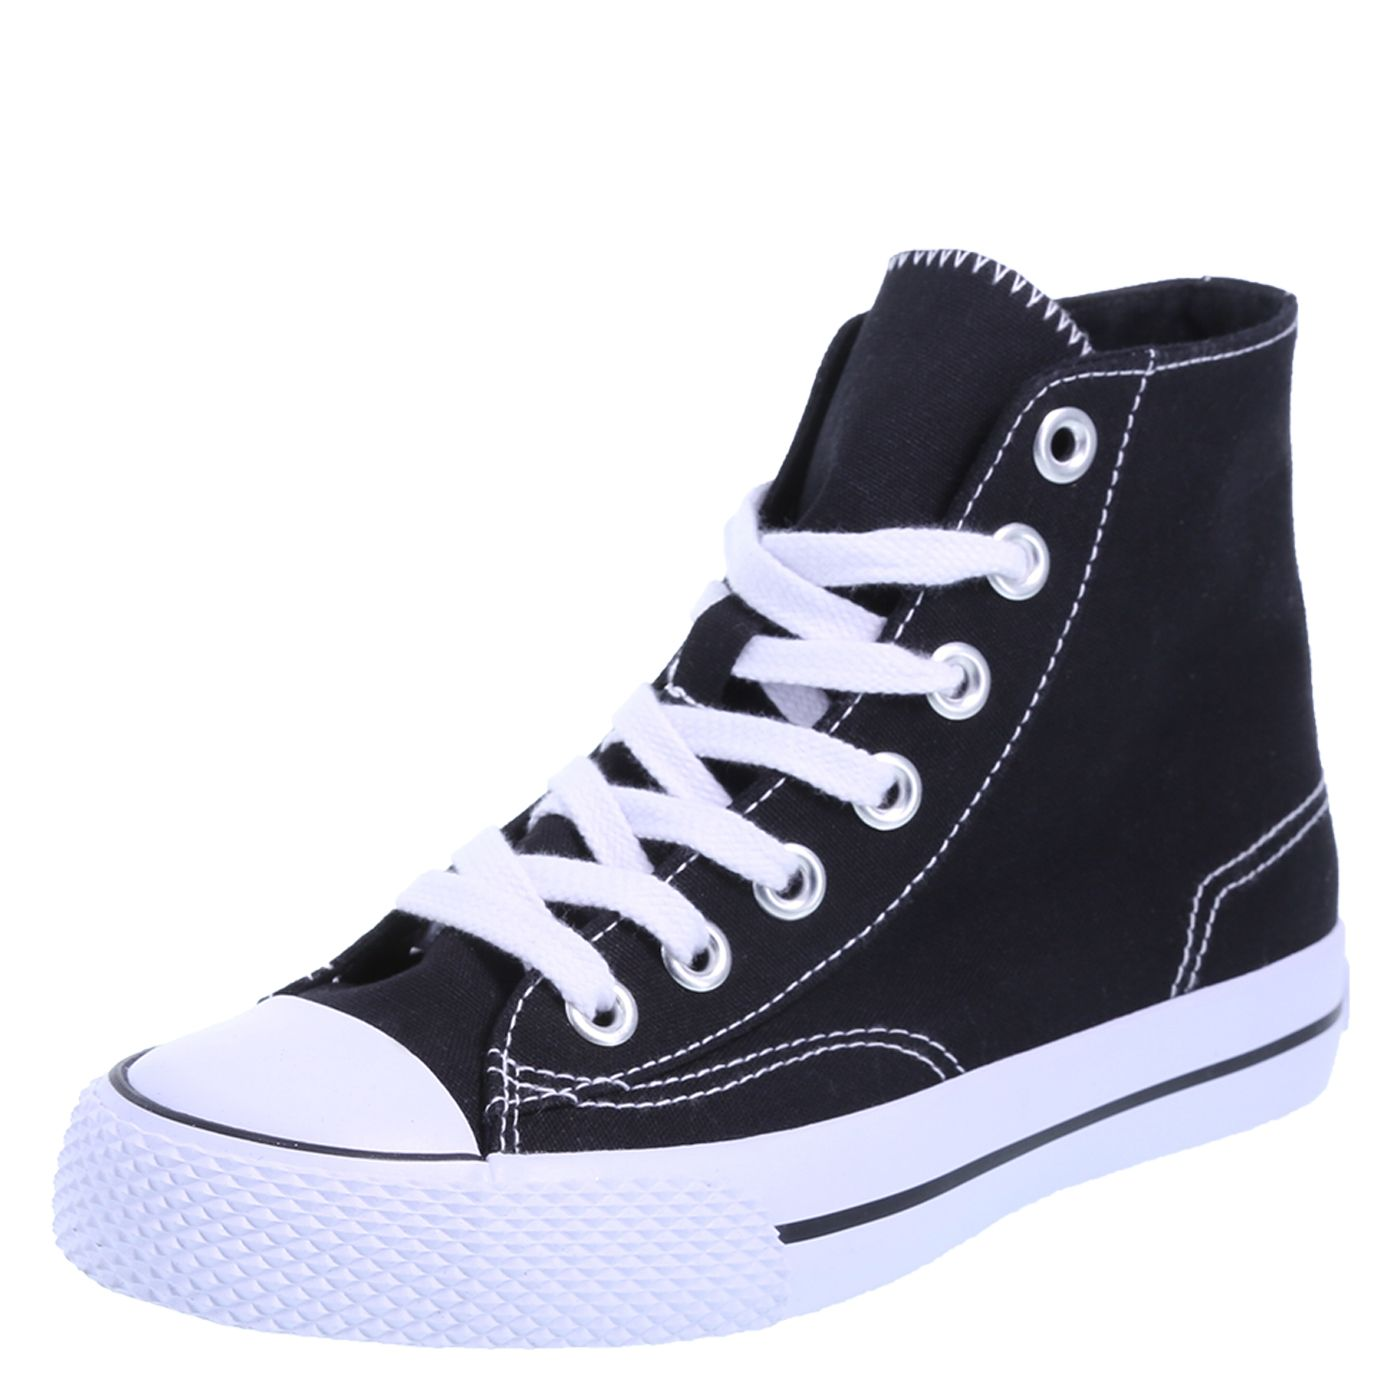 d4b0b528e780 Achieve that cool retro look and now in a hi-top! The Legacee Hi-Top from  Airwalk features a sturdy upper with a cap toe